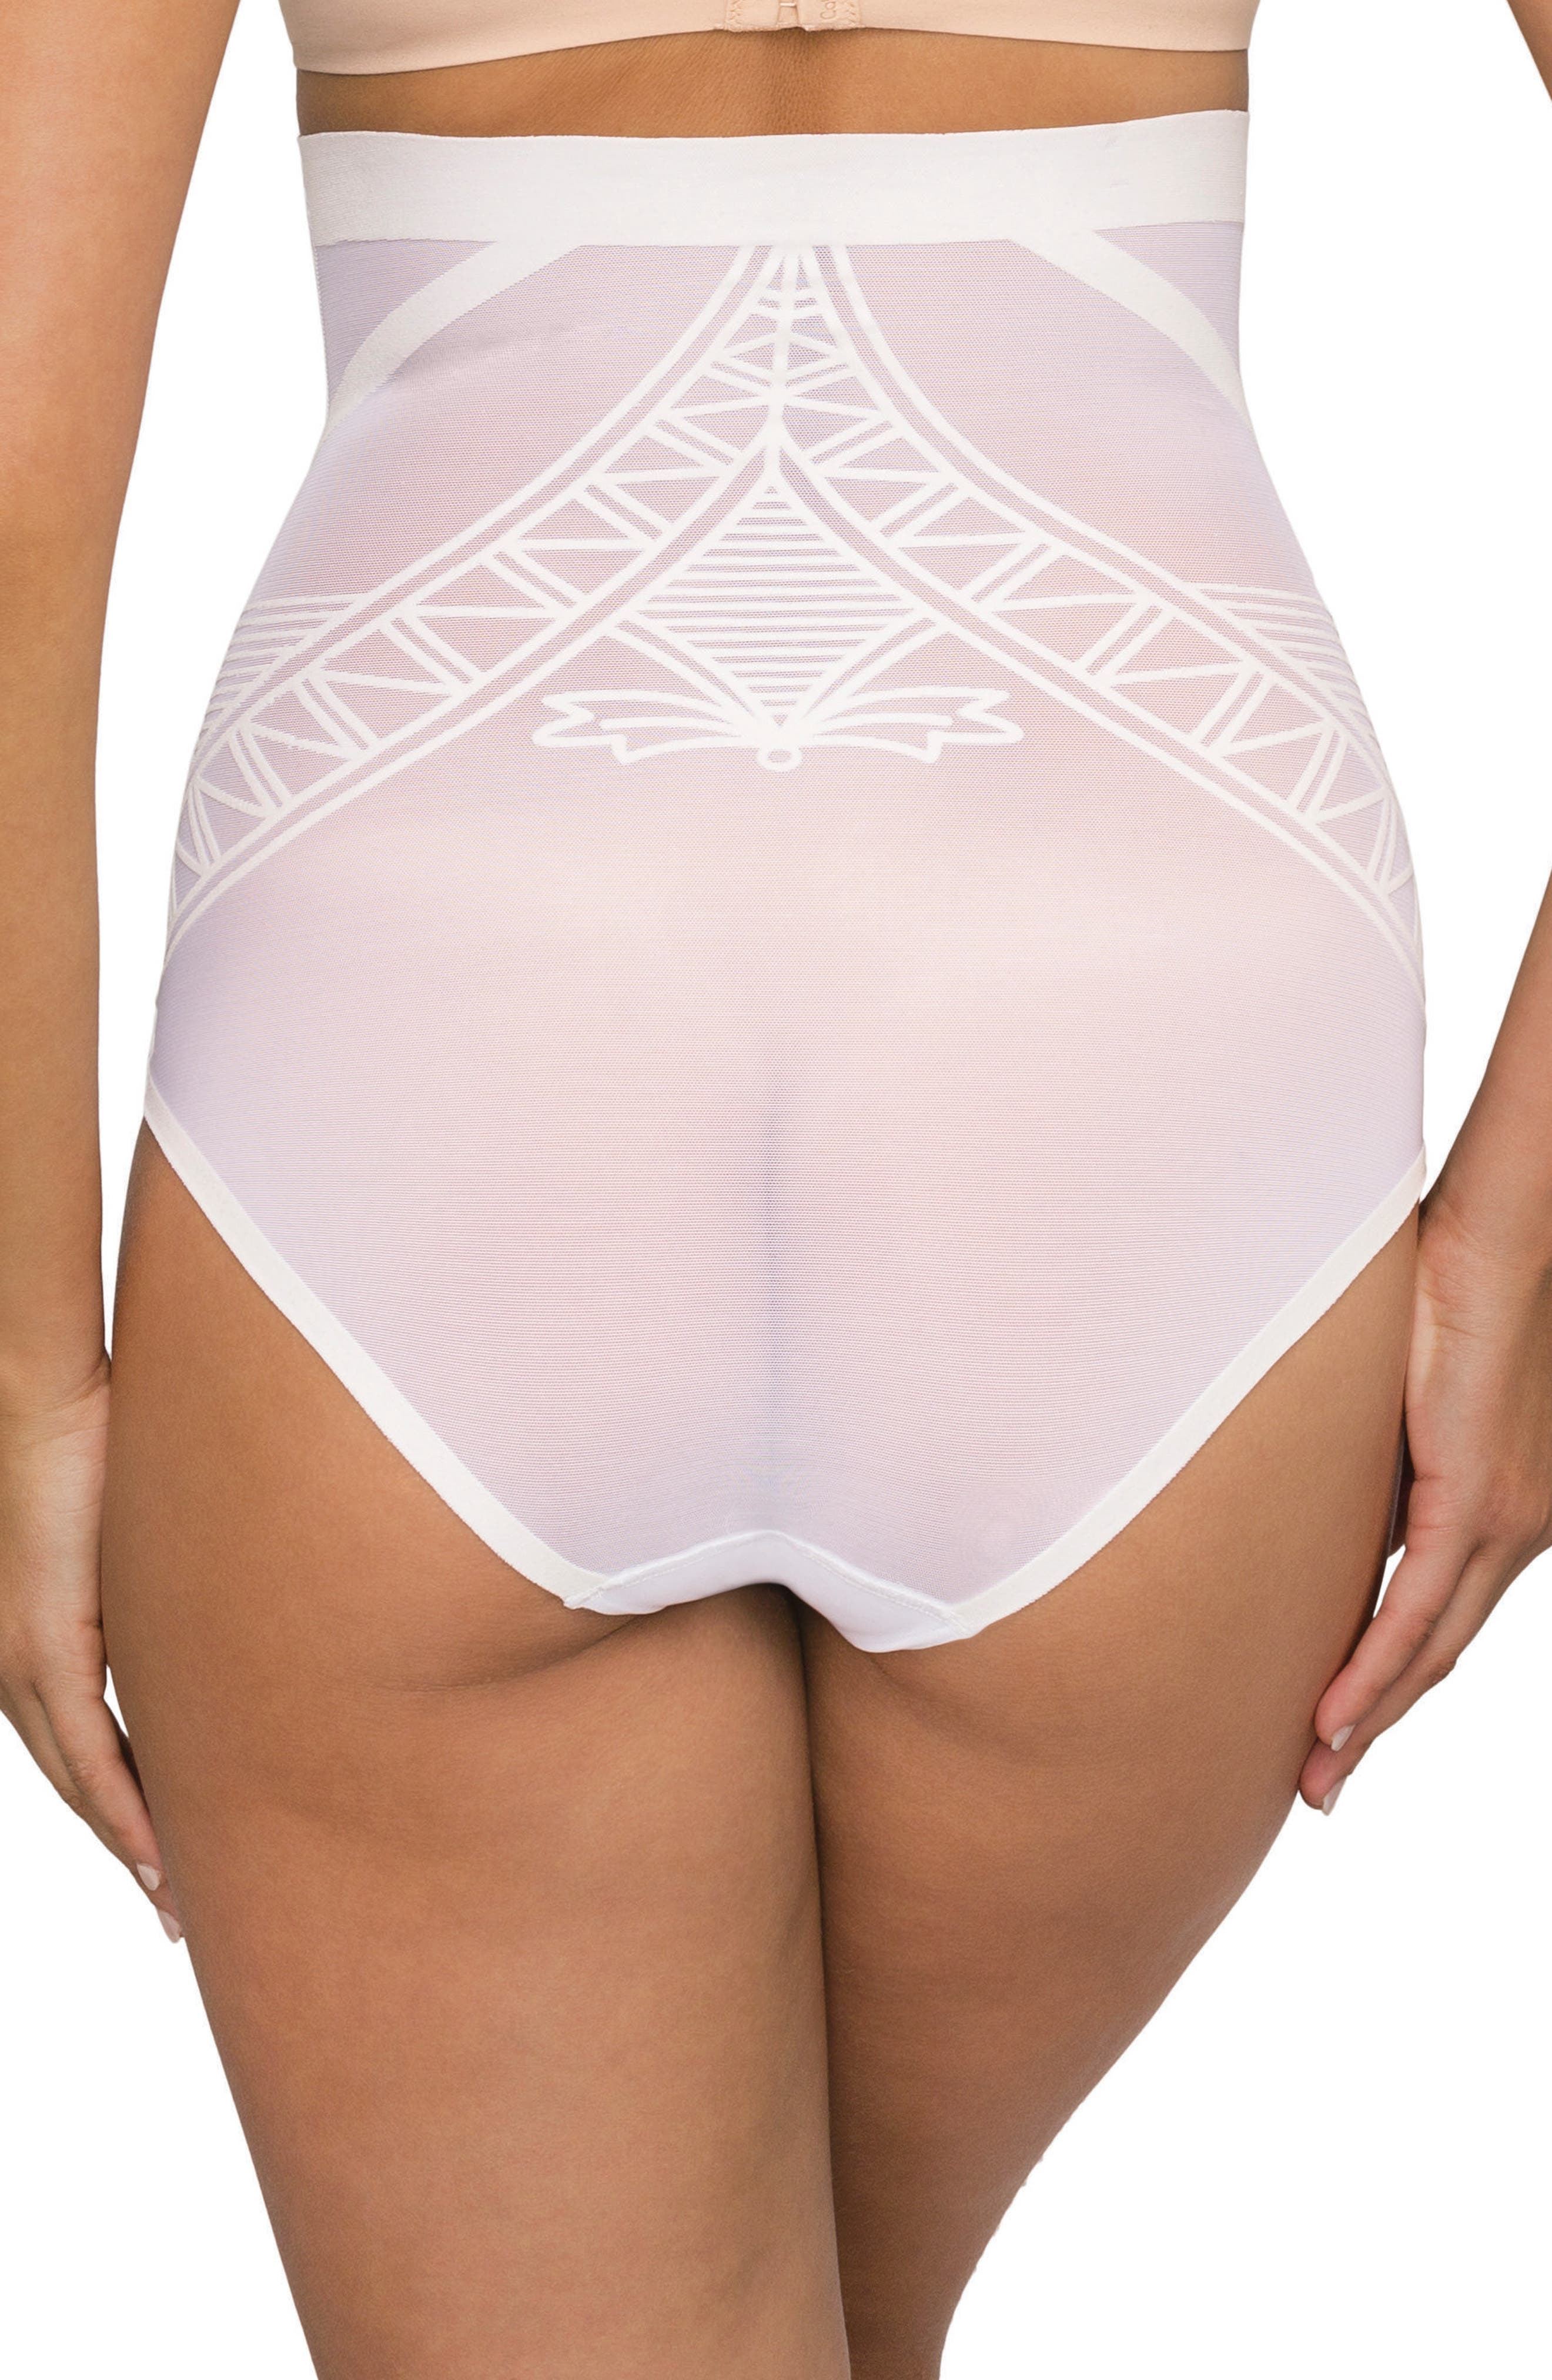 Enchanté High Waist Shaper Briefs,                             Alternate thumbnail 2, color,                             Frost